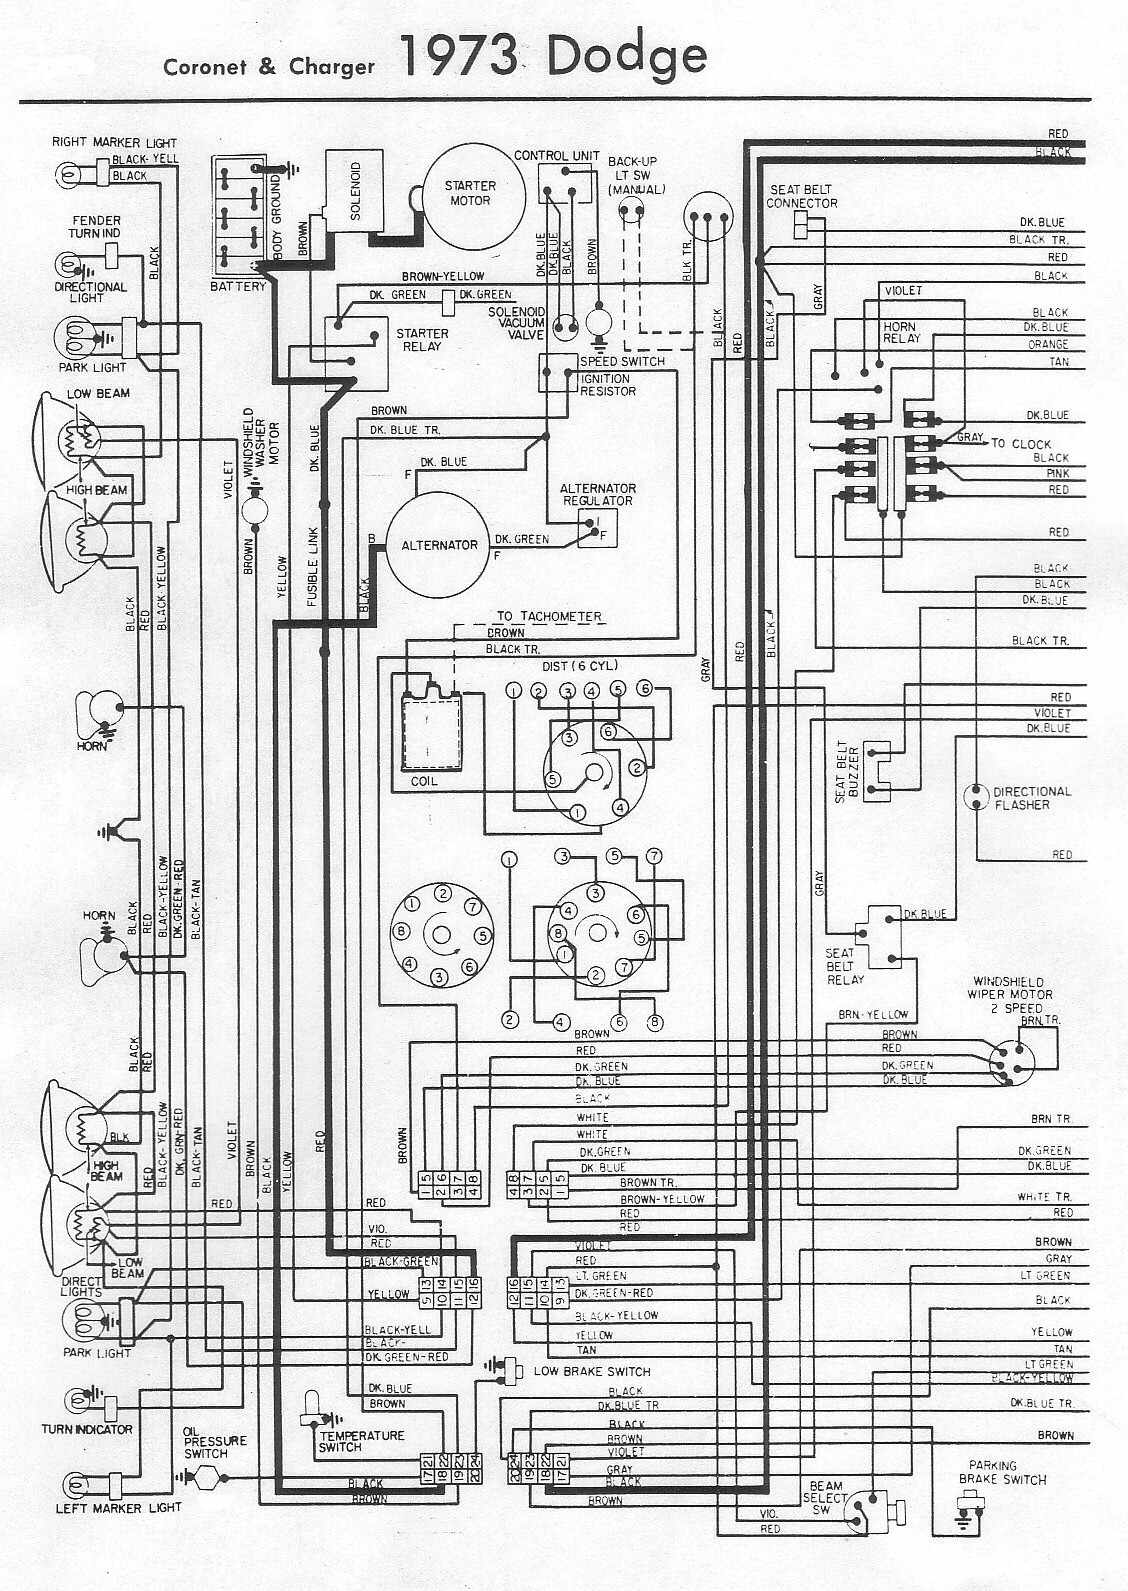 electrical wiring diagram of 1973 dodge coronet and charger?t\=1508404771 1973 dodge dart wiring diagram 1973 dodge dart instrument panel 2007 dodge charger wiring harness at virtualis.co